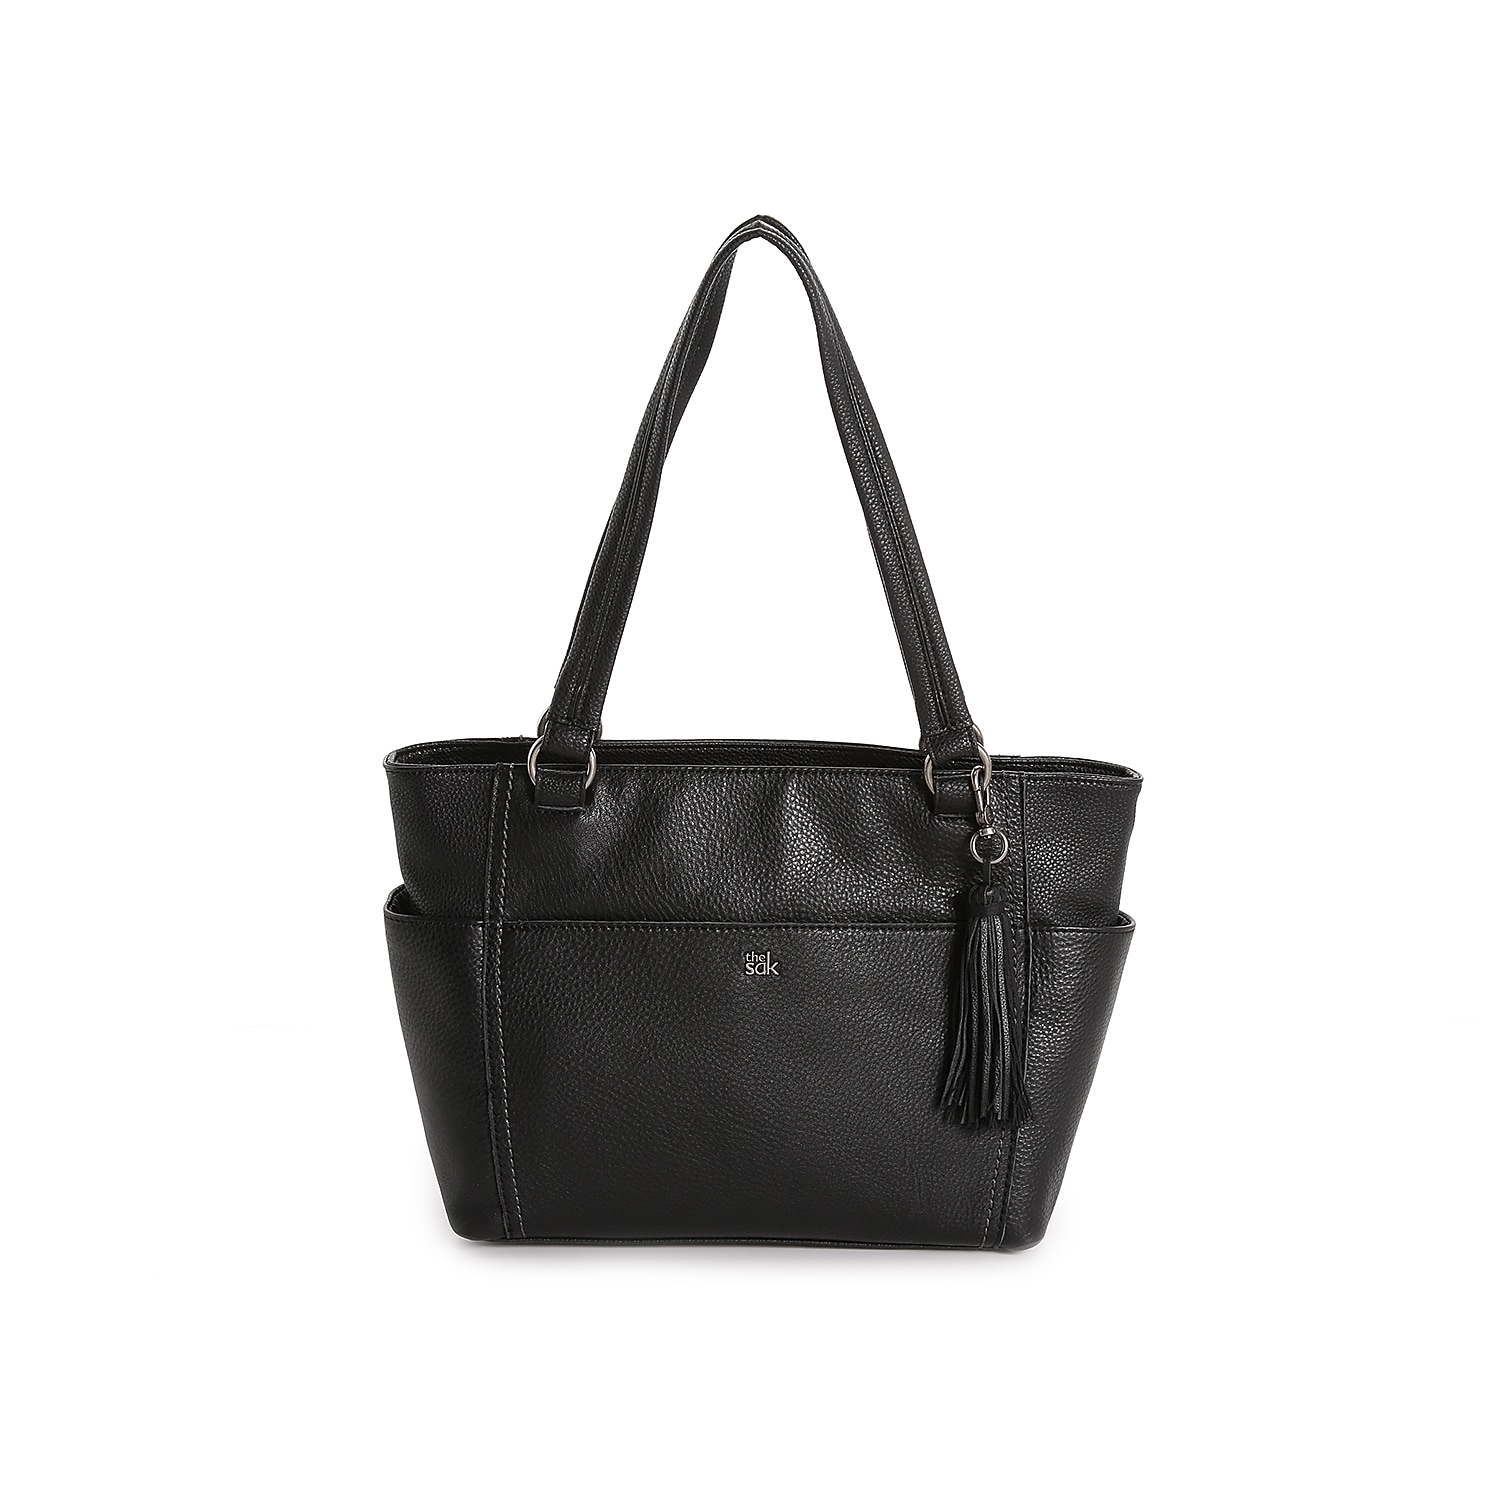 You can\\\'t go wrong with the Ashby shoulder bag from The Sak. This leather handbag features a classic design and a roomy interior for your new favorite bag!